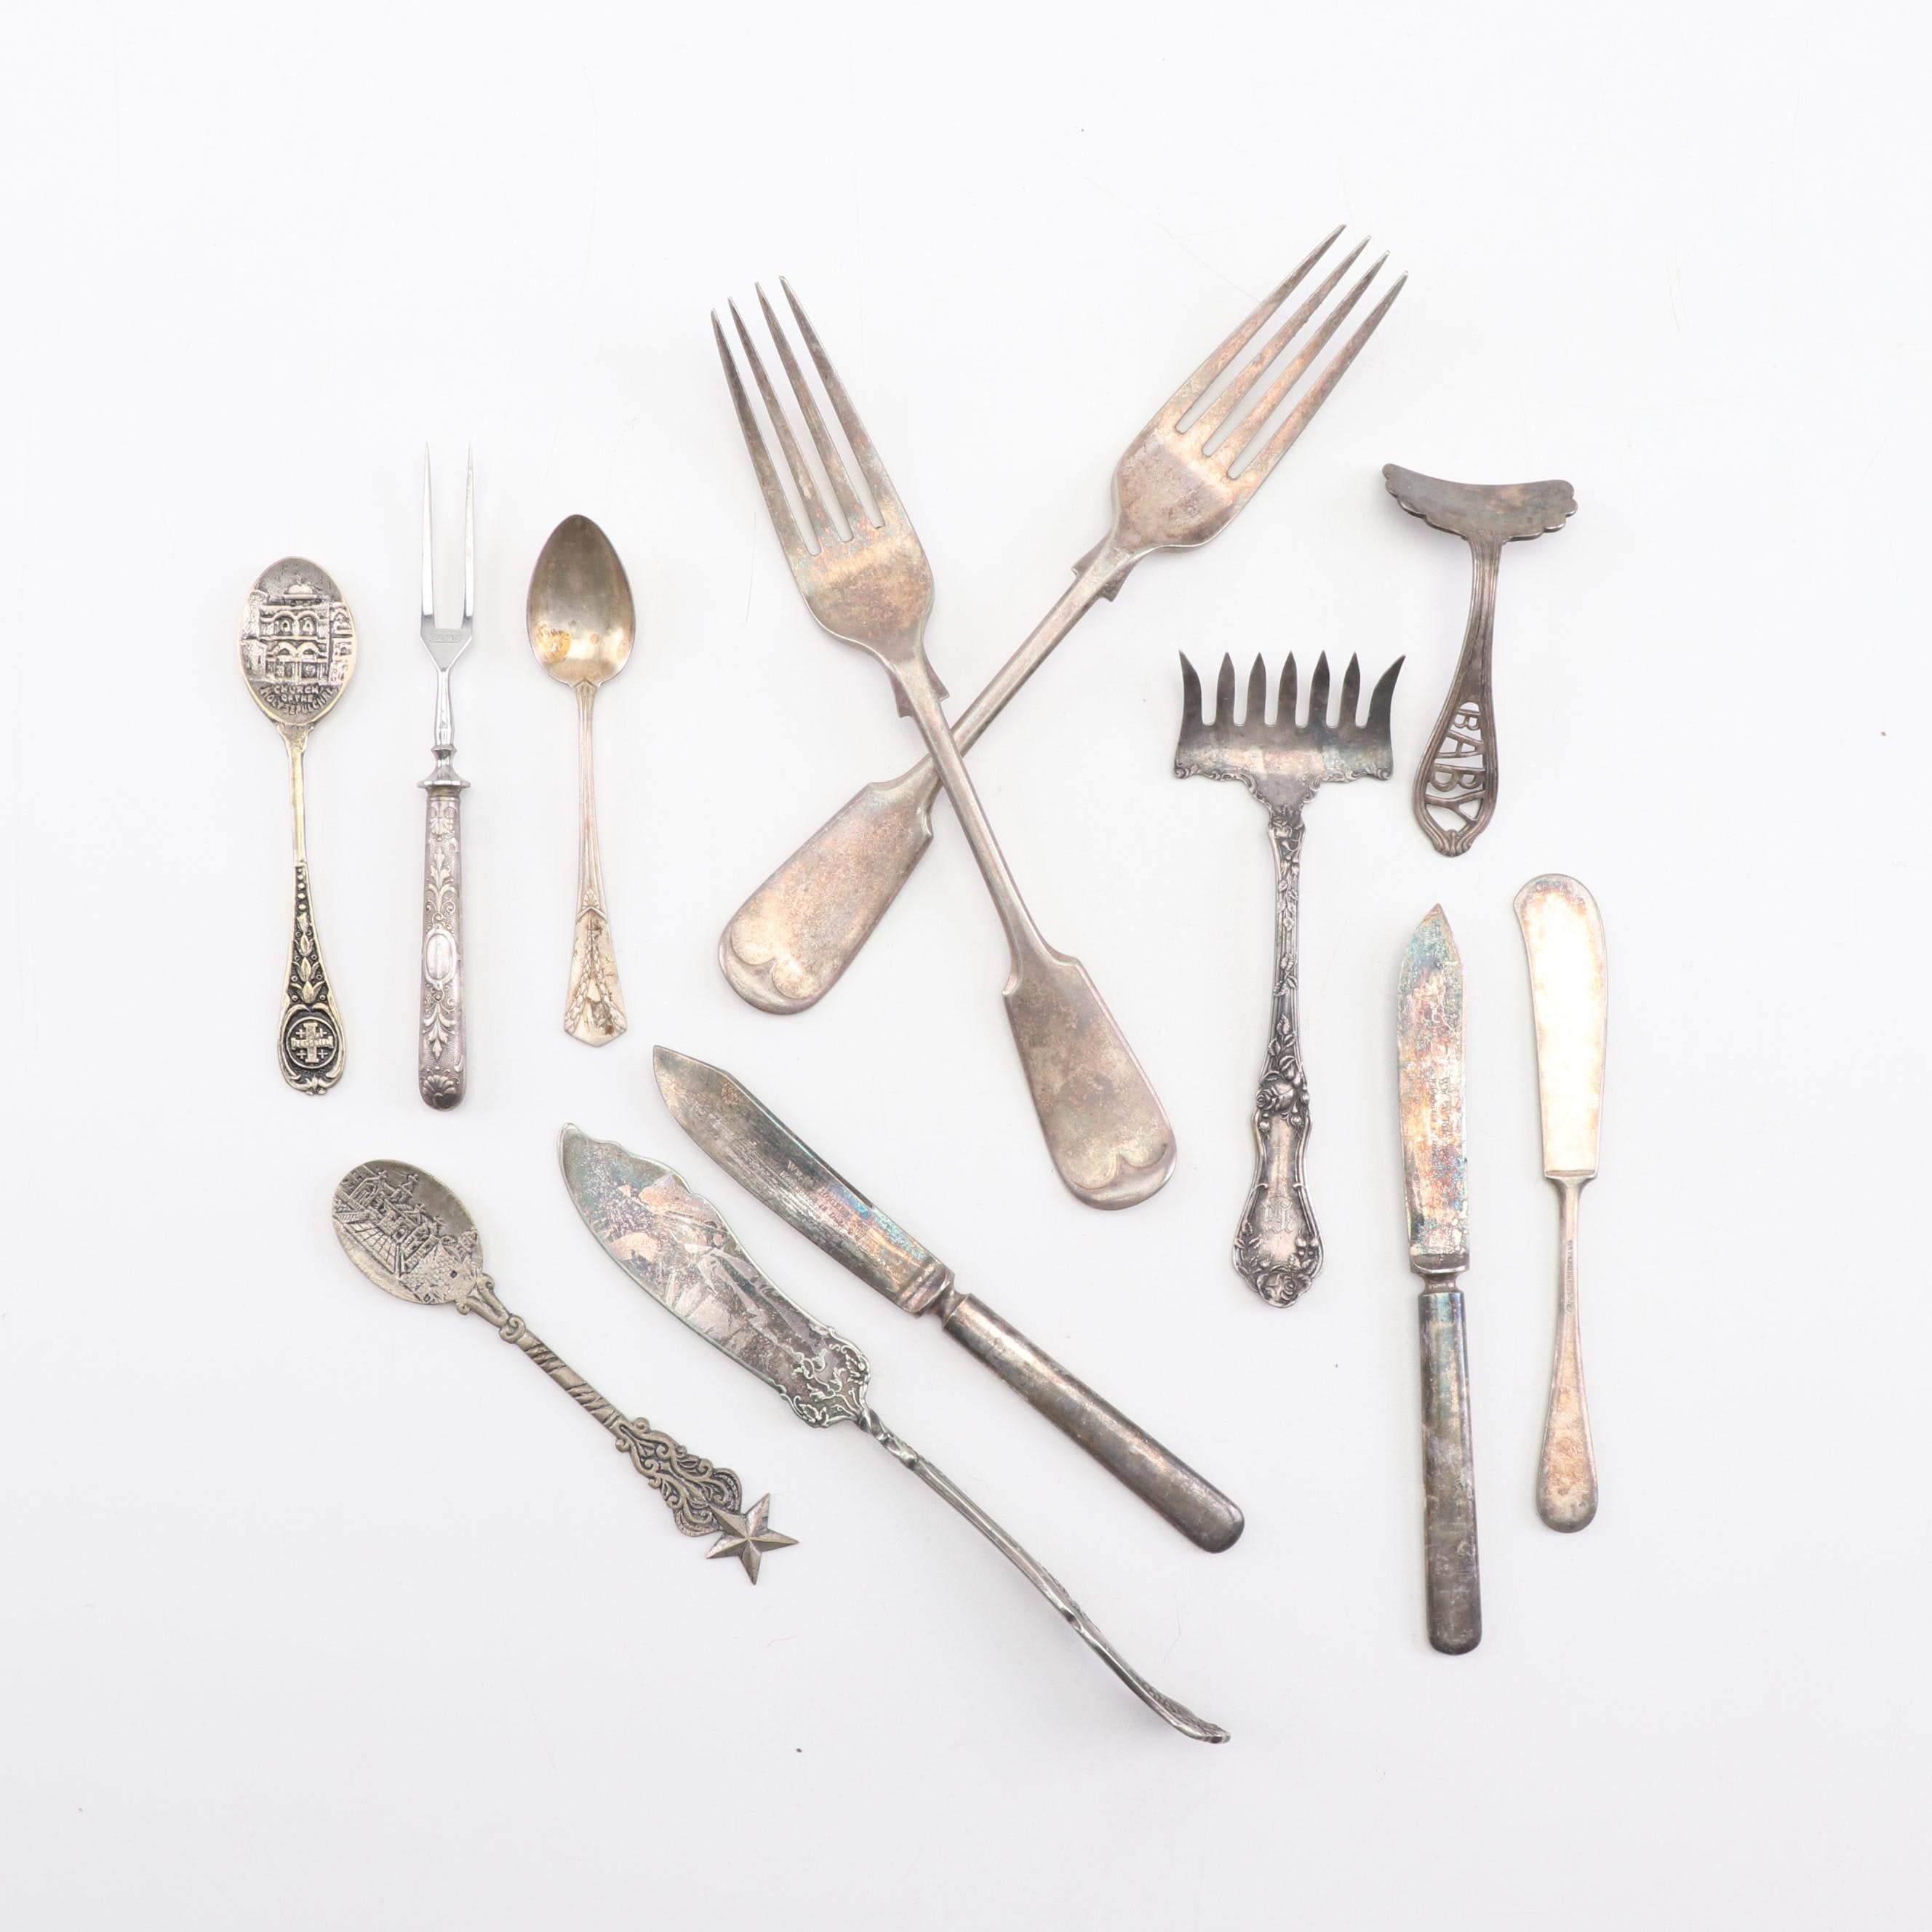 American and European Silver Plated Flatware, 19th and Early 20th Century